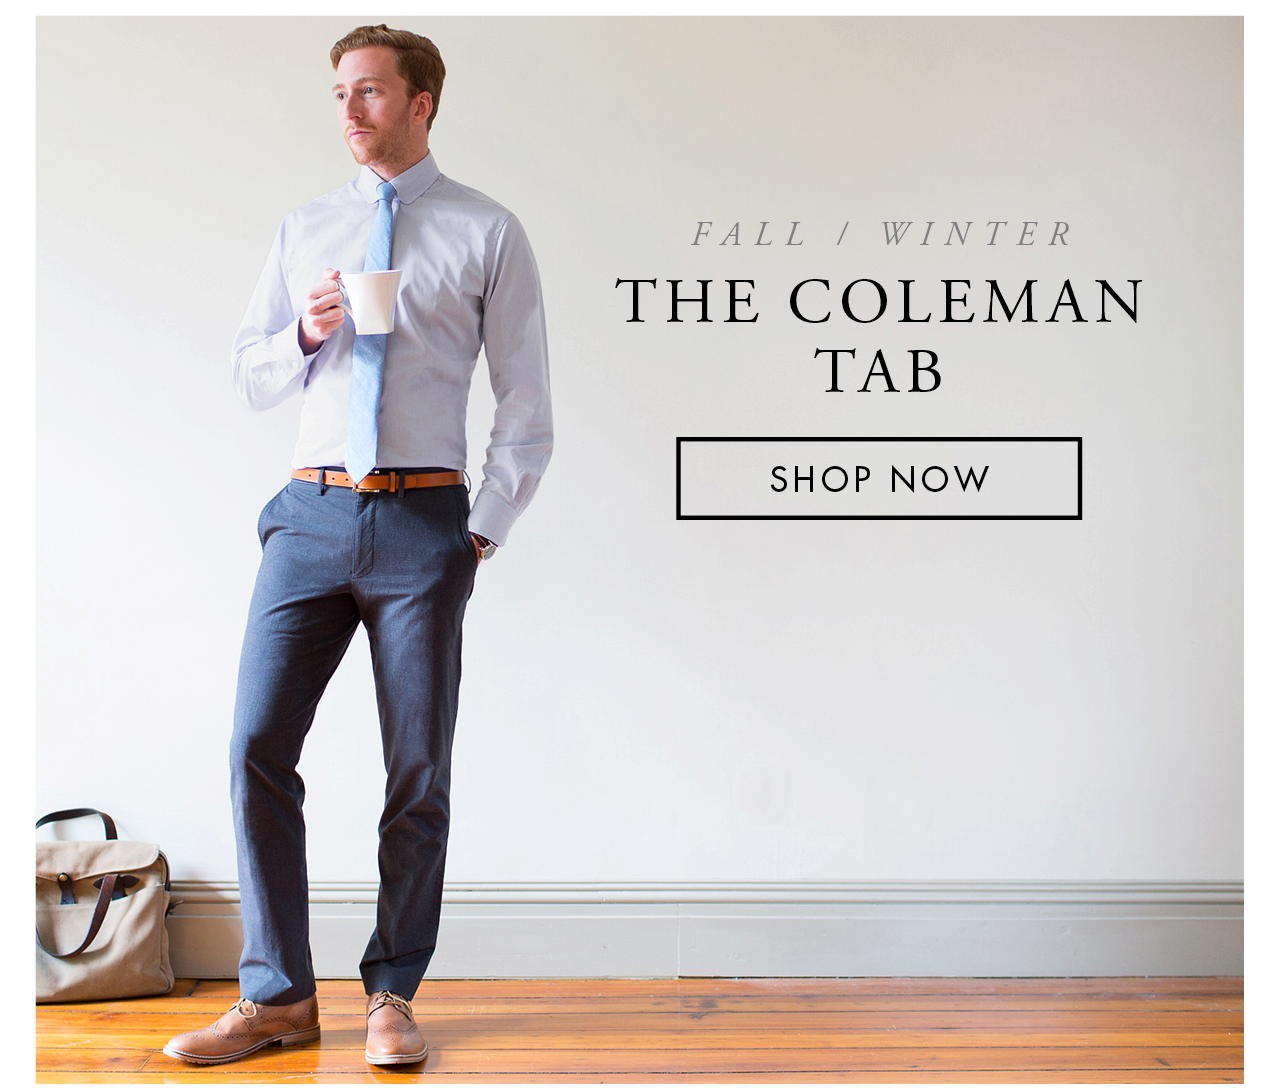 The Coleman Tab